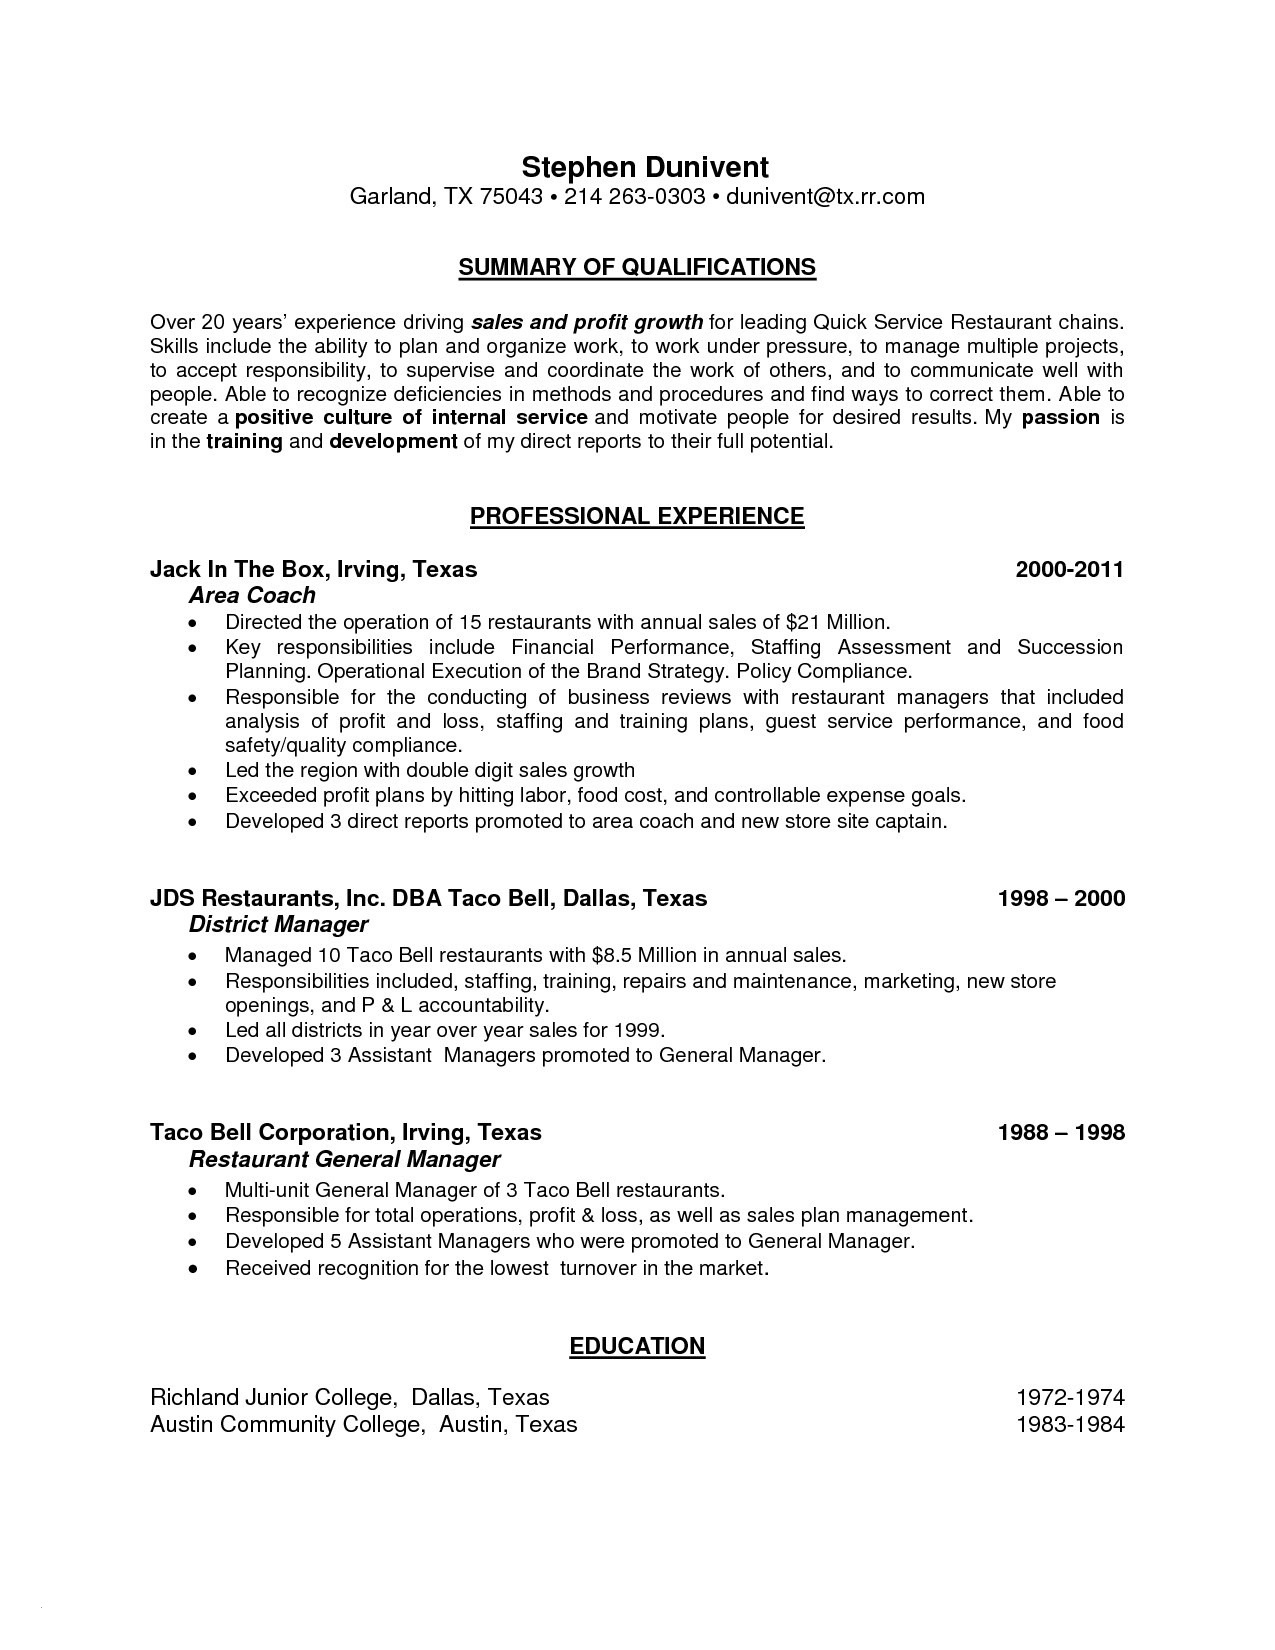 Retail Sales Resume Template - Salesman Resume Example Unique Luxury Grapher Resume Sample